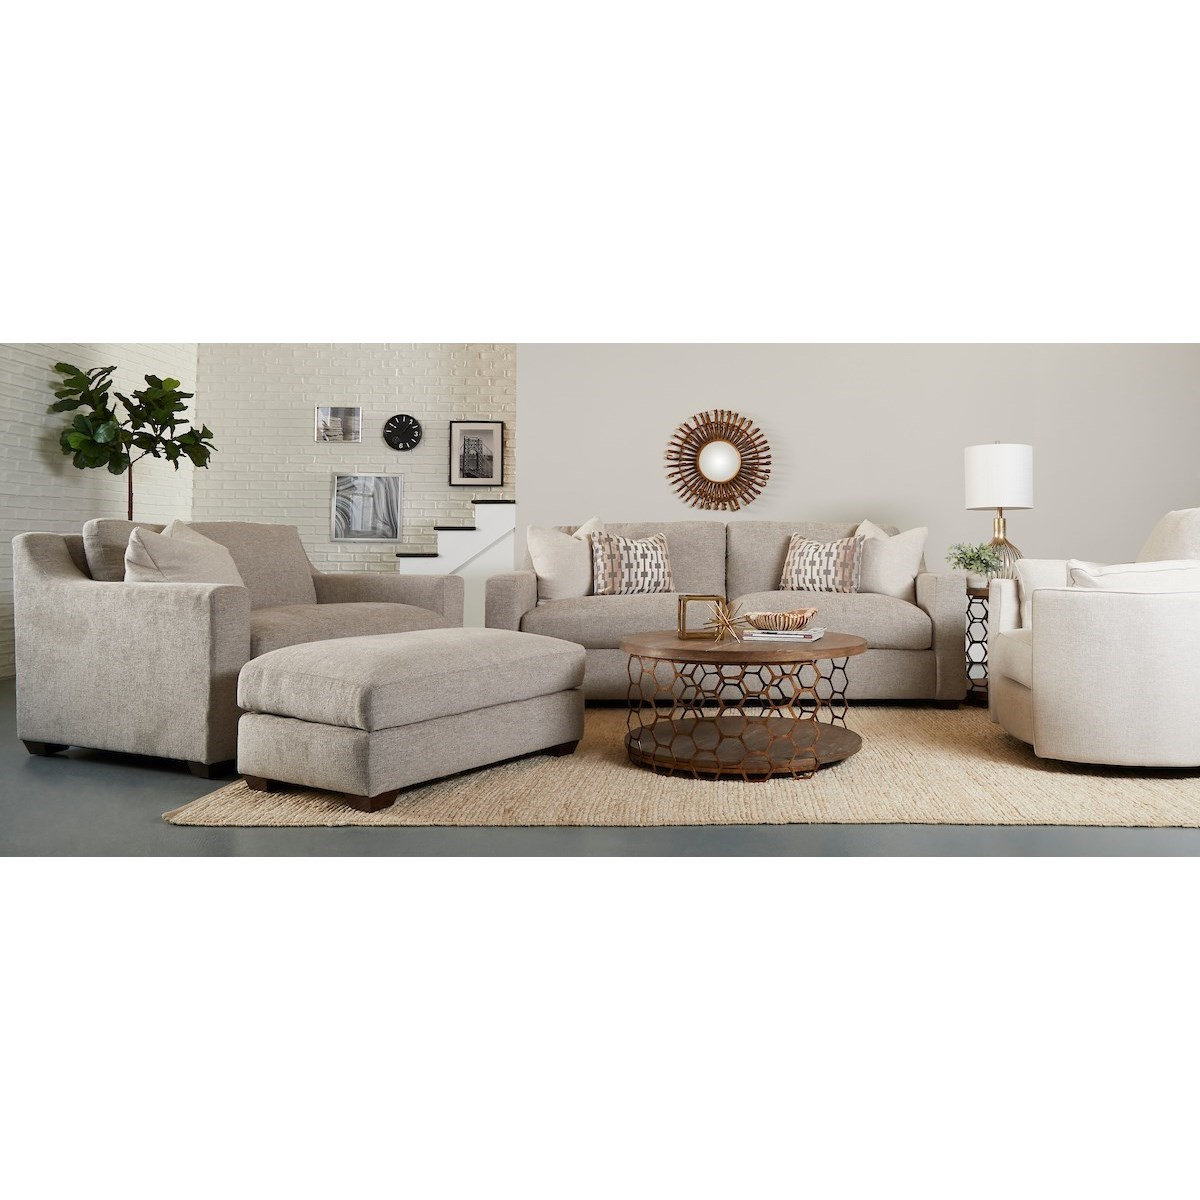 Novato Living Room Group by Klaussner at Northeast Factory Direct